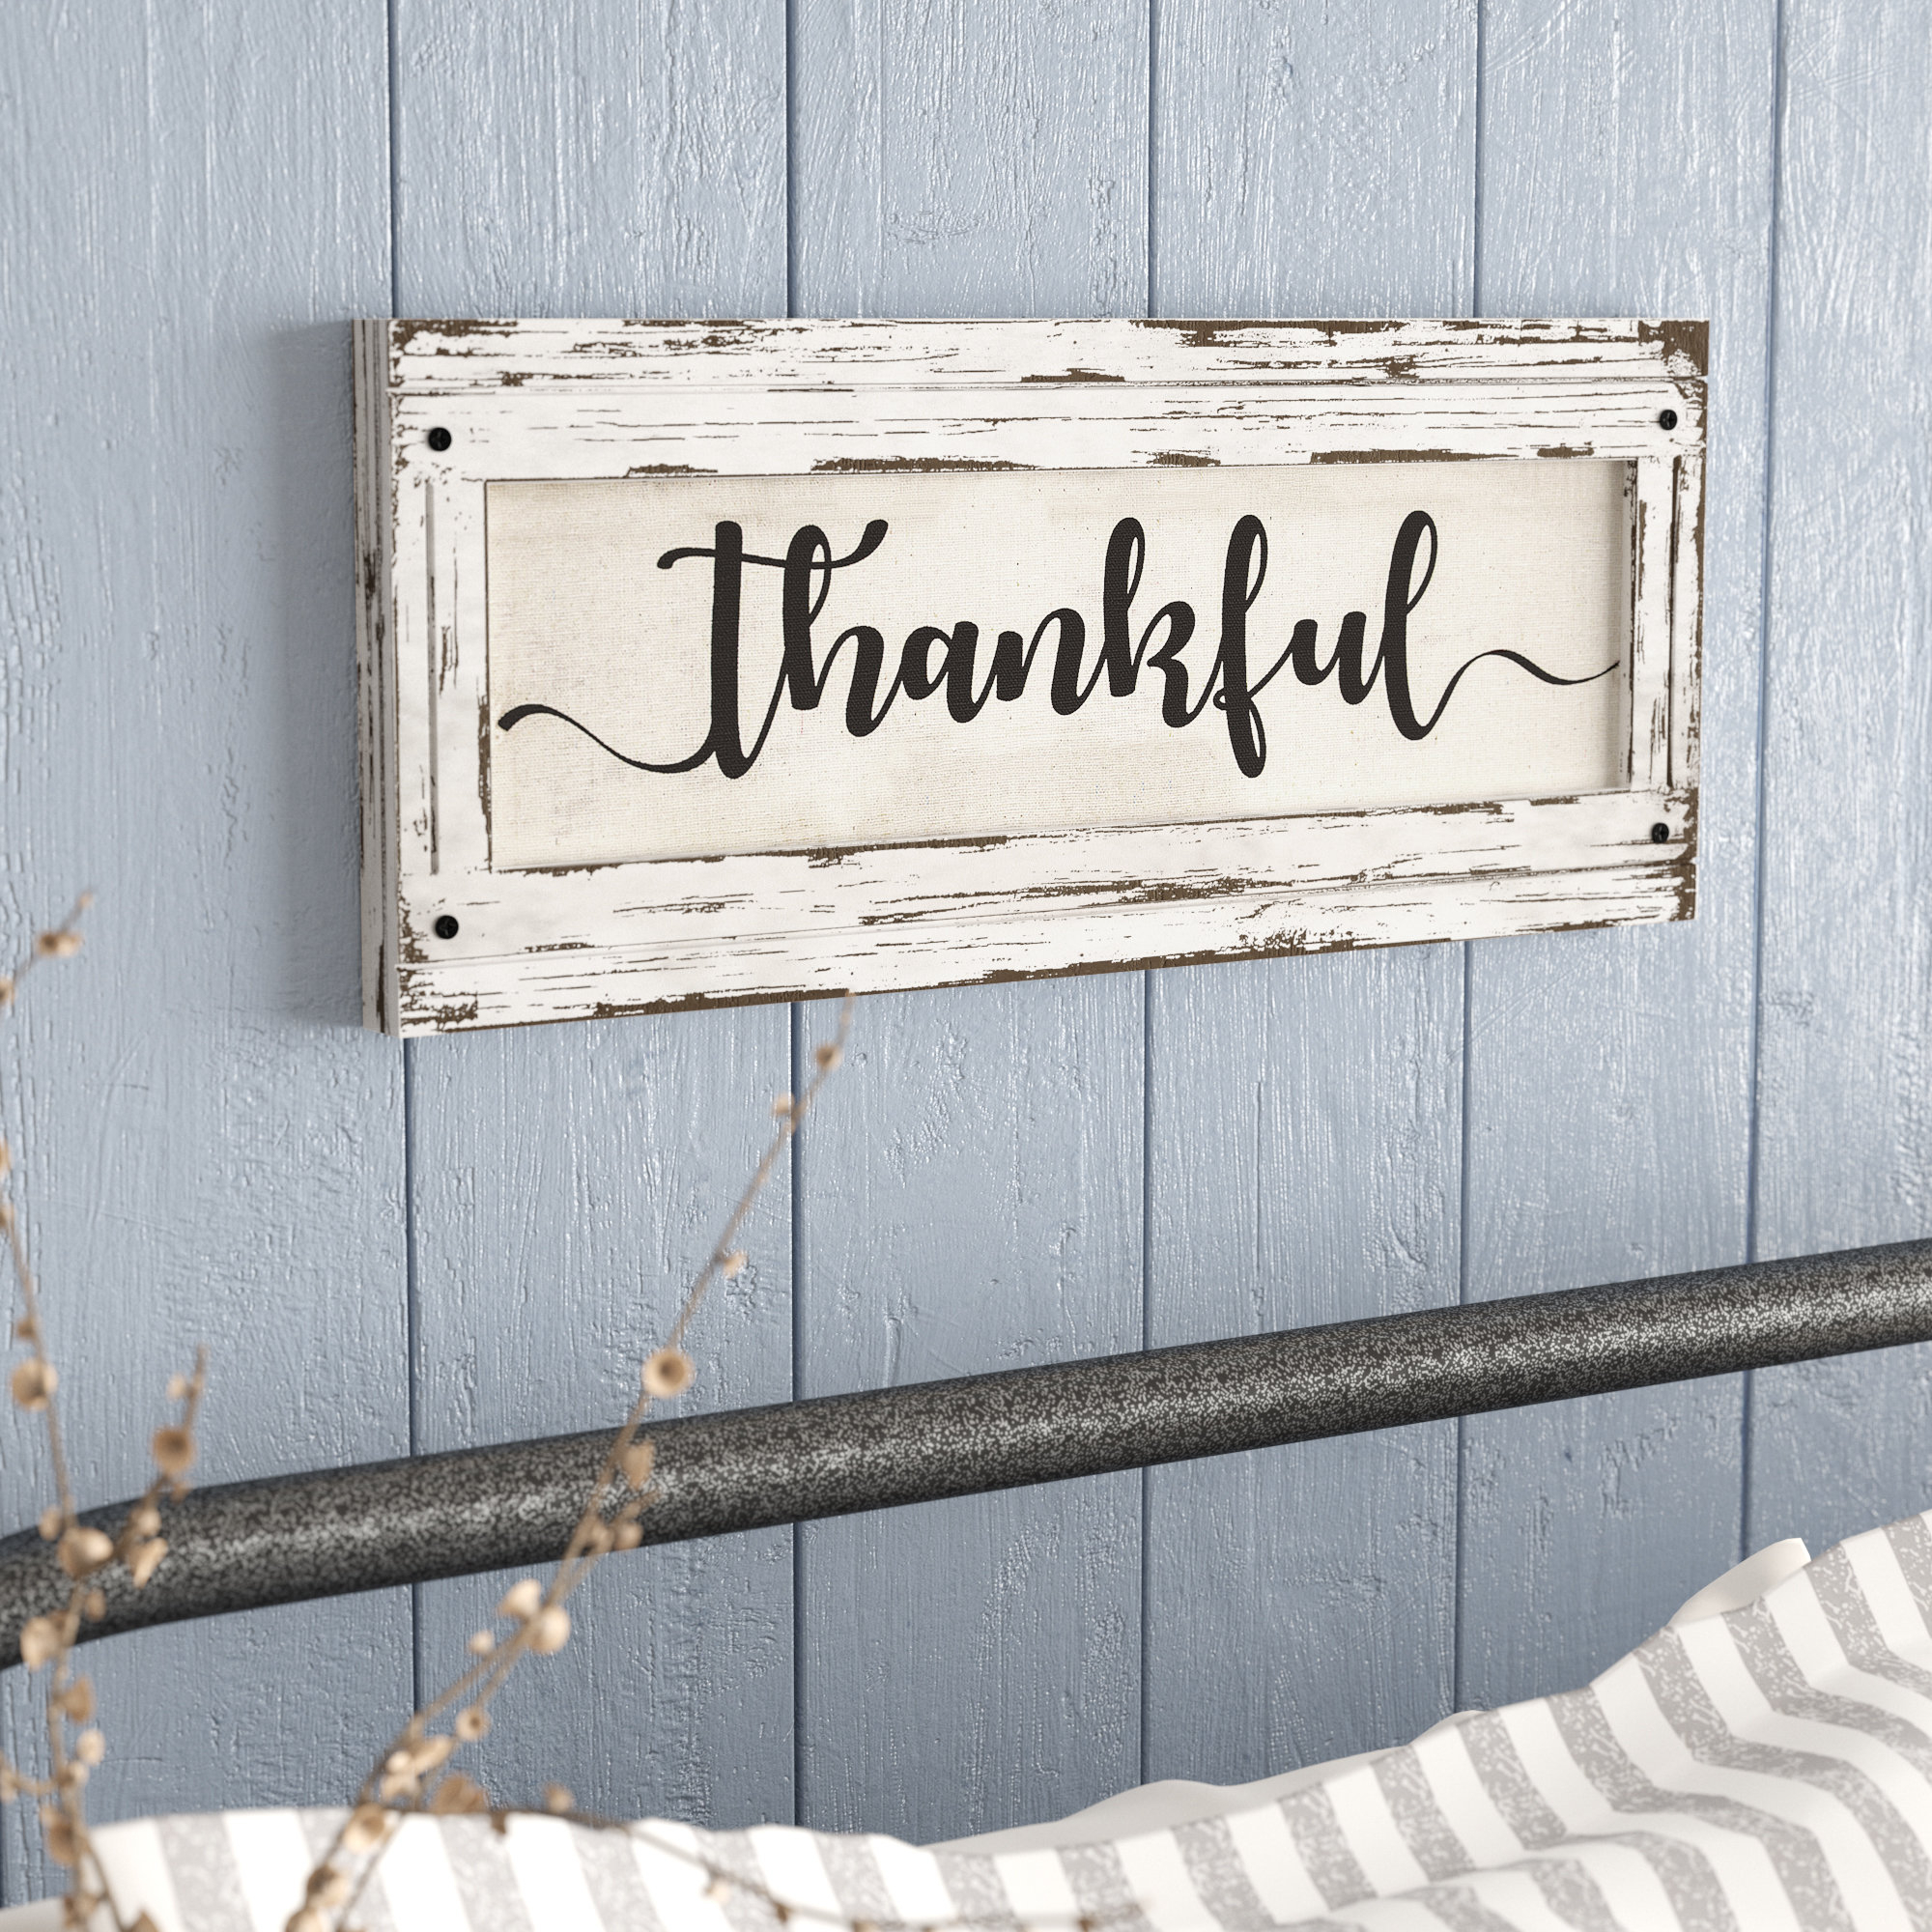 Current Thankful' Wood Framed Inspirational Canvas Sign Farmhouse Wall Décor Inside Fawcett Thankful Heart Wall Decor (View 5 of 20)